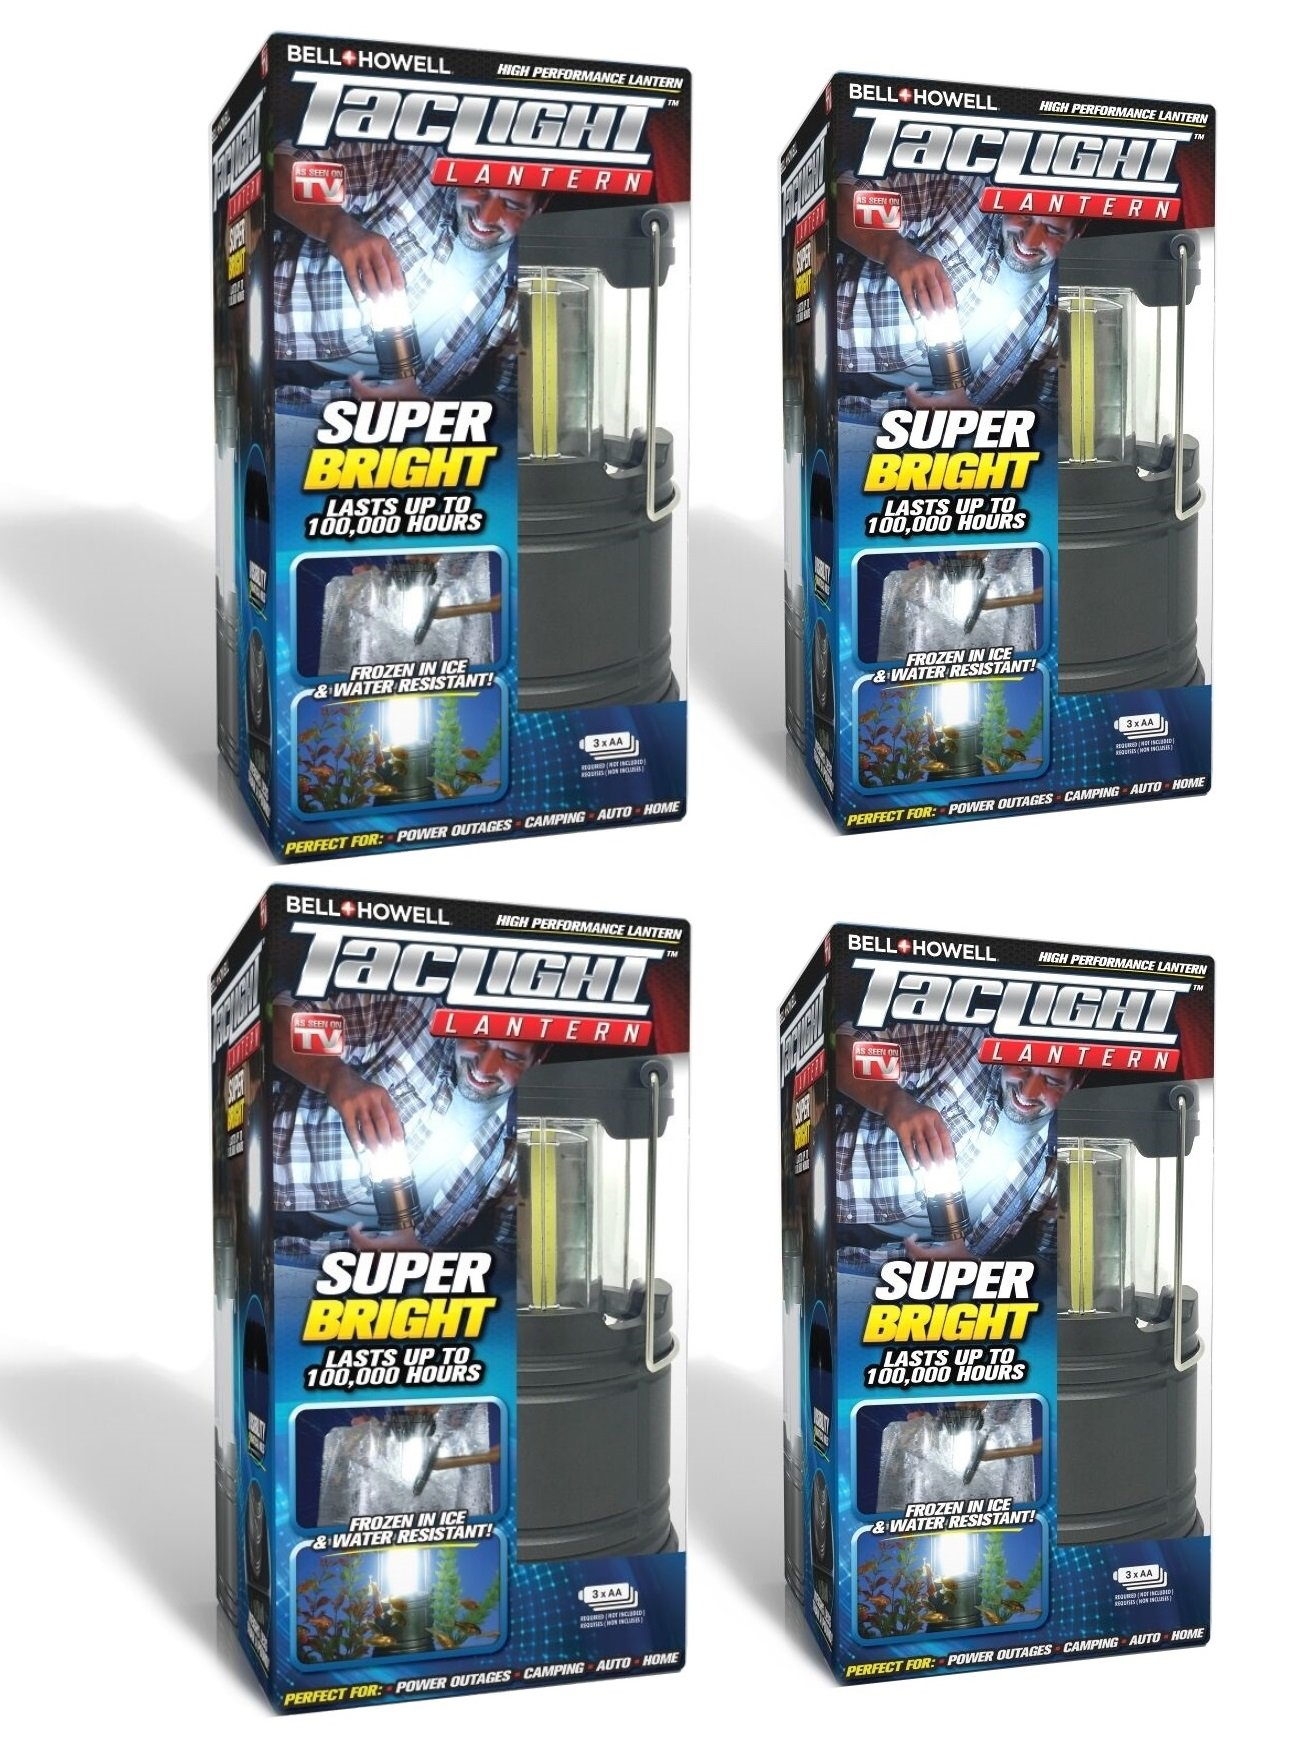 Bell + Howell Taclight LED Lantern with Automatic On/Off Function (Pull up OR push down), Collapsible As Seen On TV (Pack of 4) by Bell + Howell